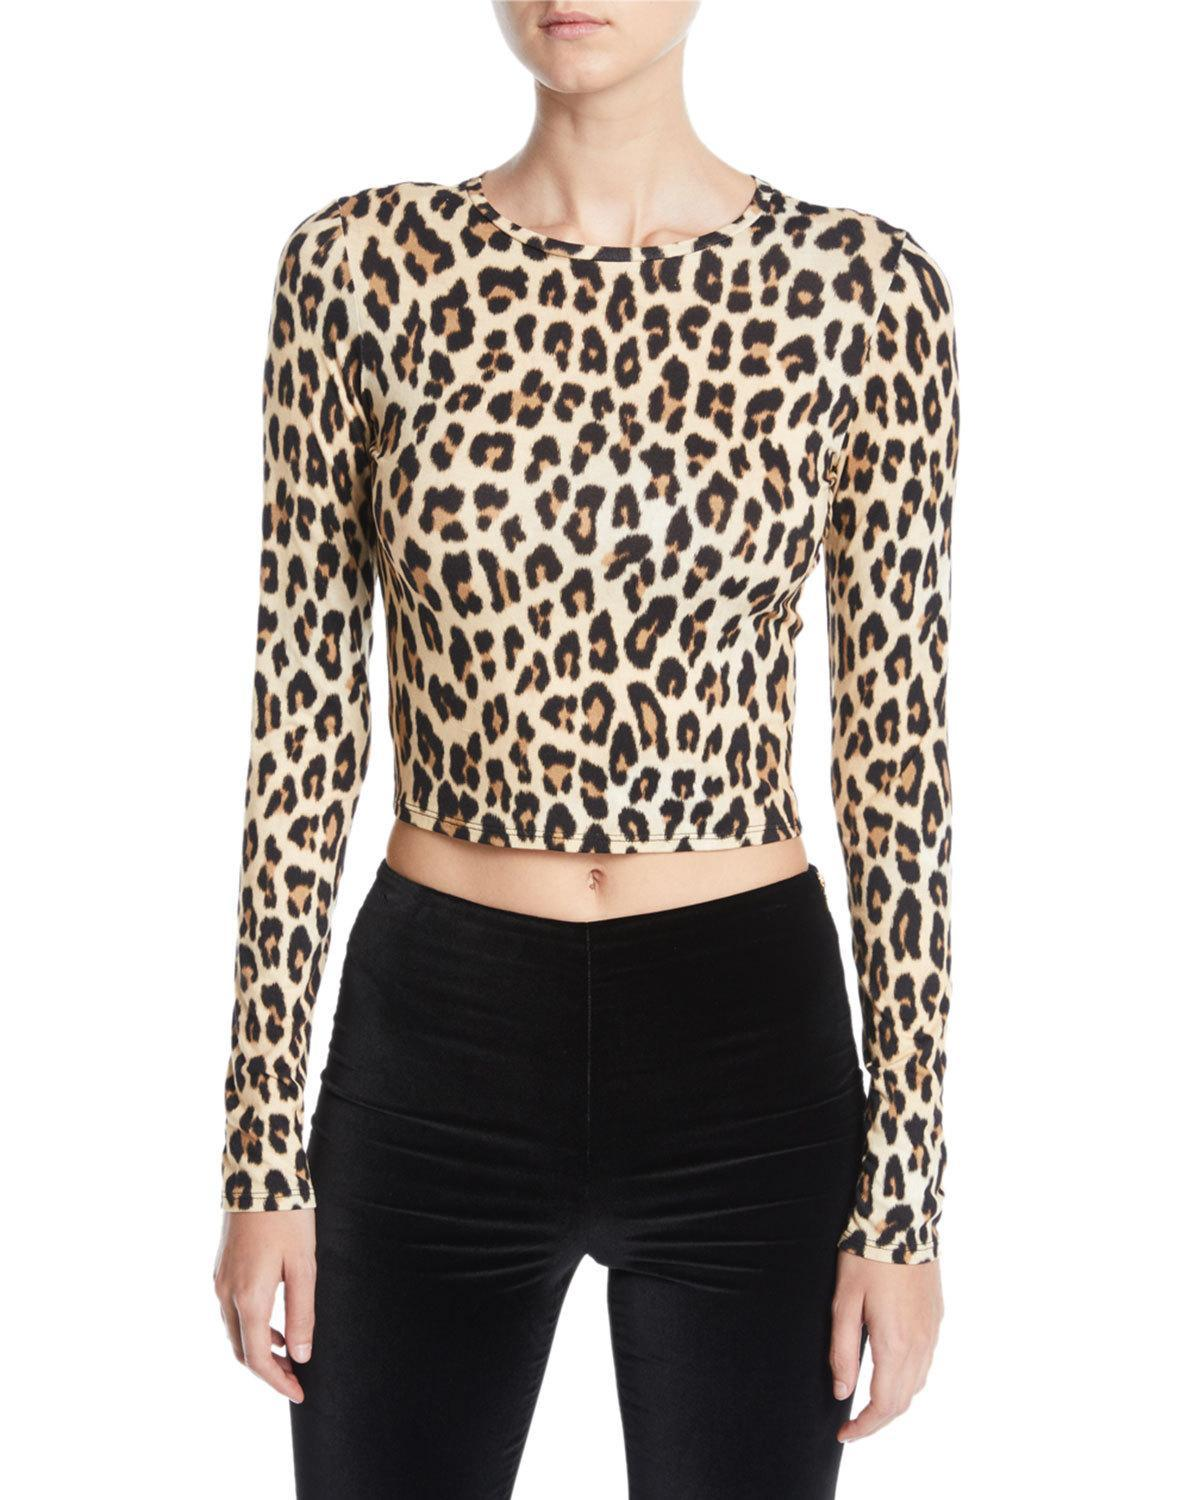 c3f67040701f Alice And Olivia Alice + Olivia Delaina Leopard Print Cropped Top In  Textured/Leopard